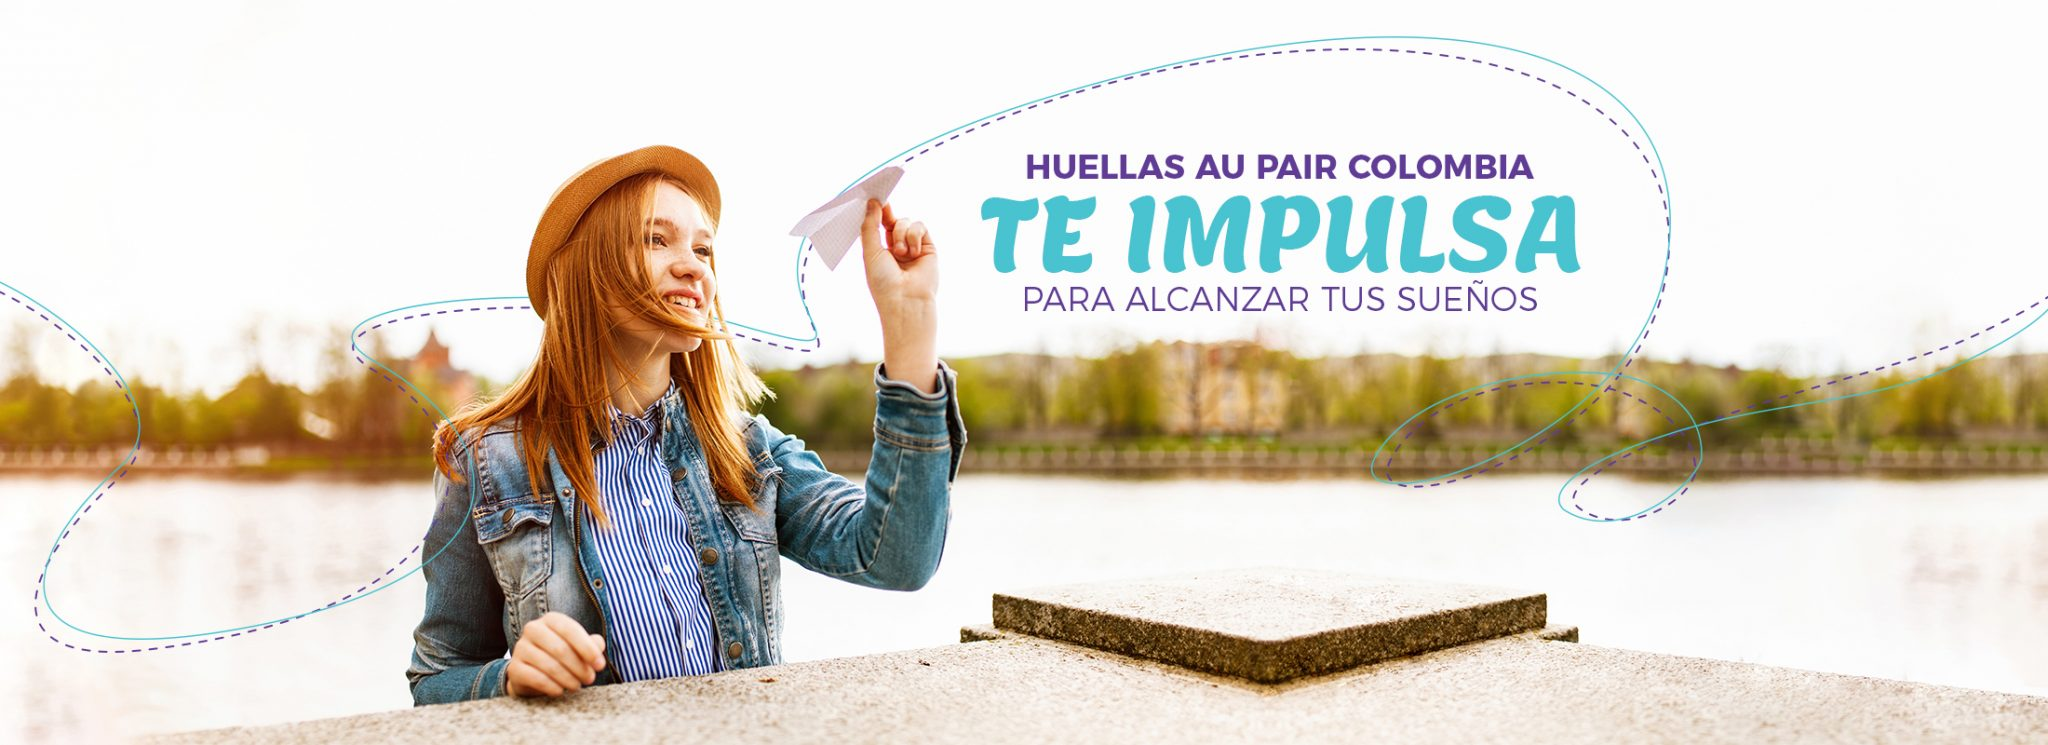 Huellas Aupair Colombia